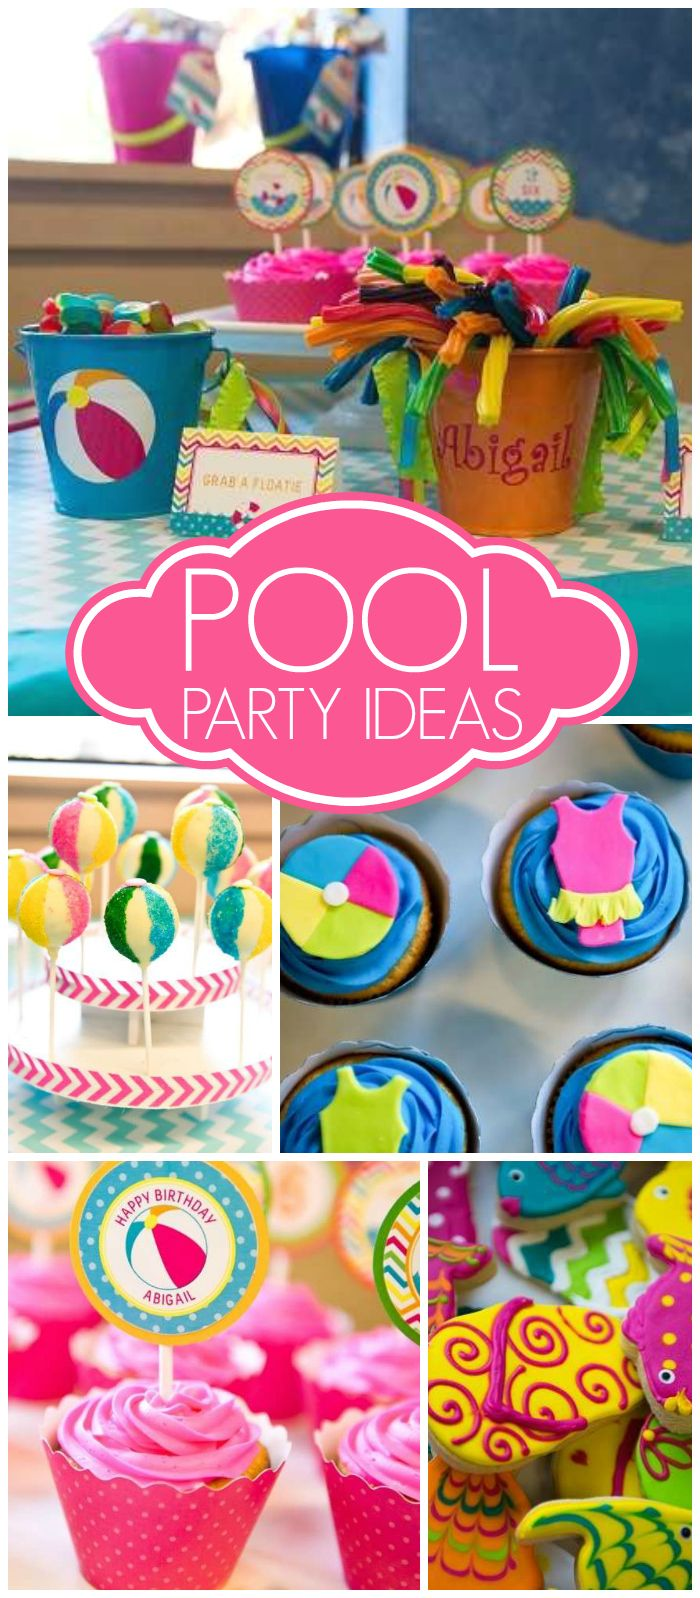 Love this bright and cheery hot pink and turquoise pool